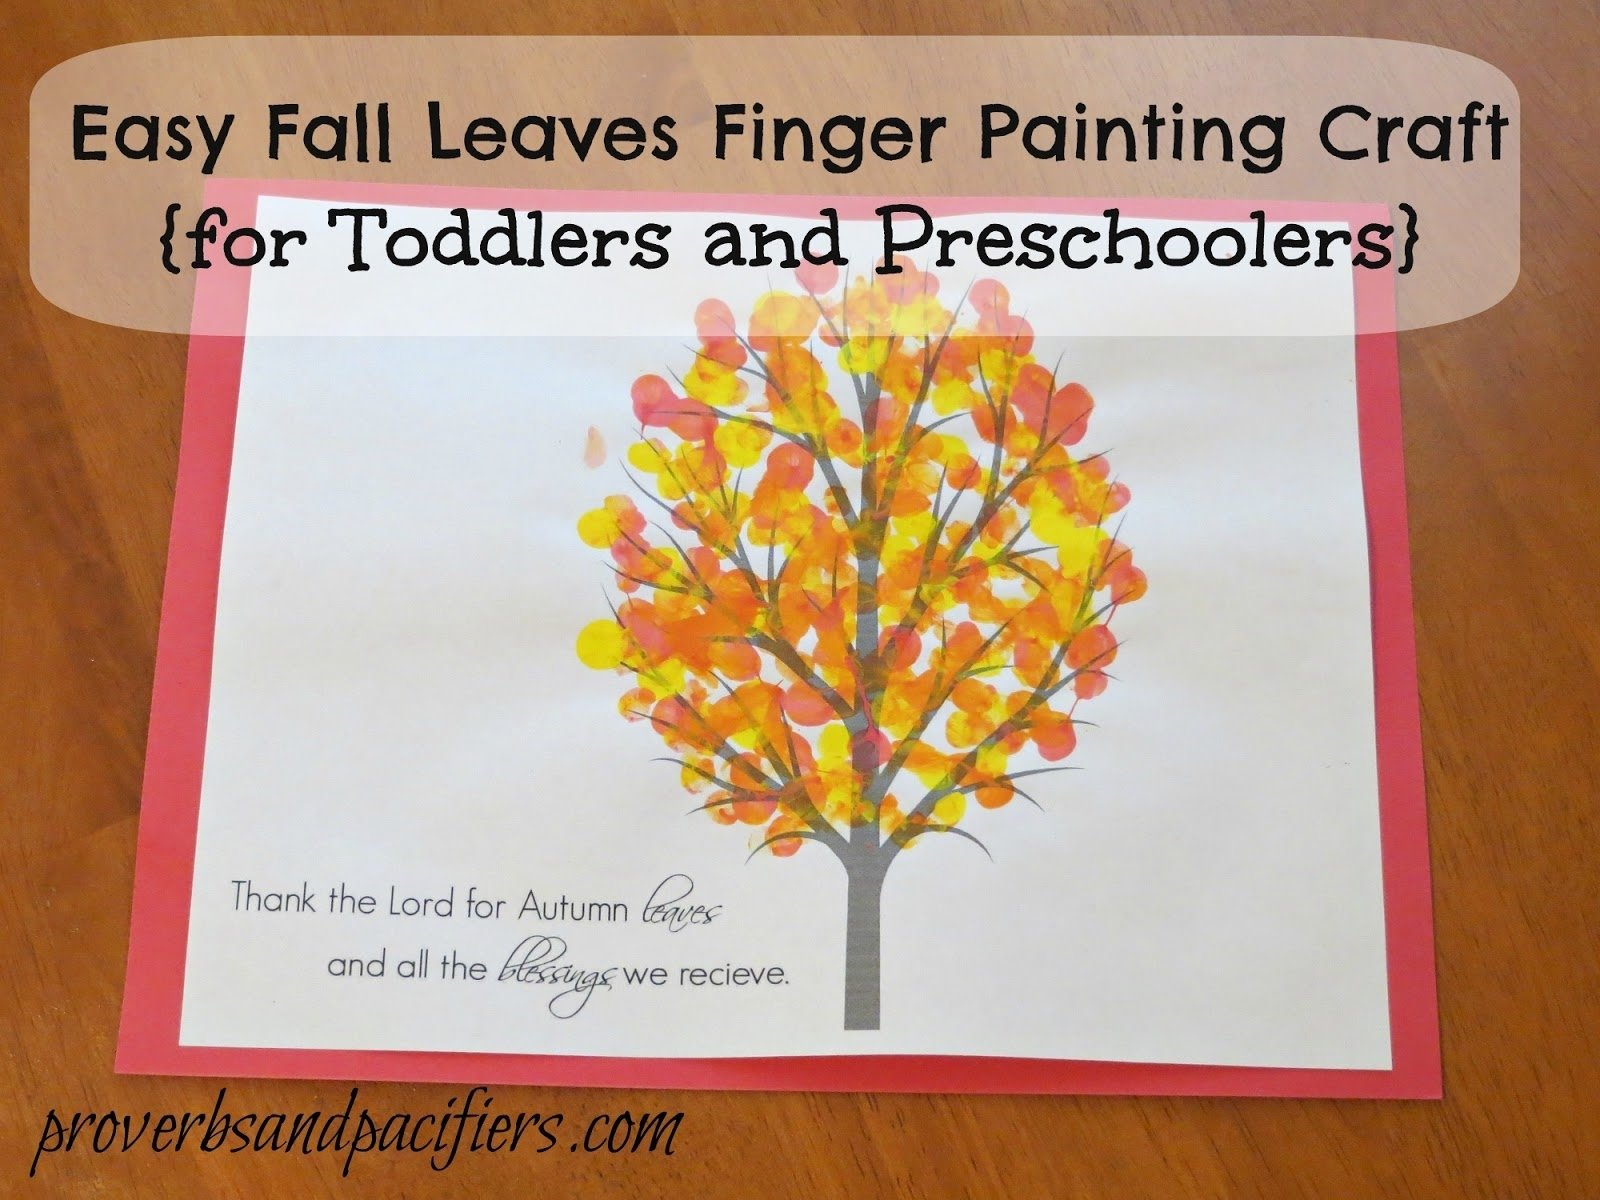 10 Cute Craft Ideas For 3 Year Olds proverbs and pacifiers easy fall leaves finger painting craft free 2021